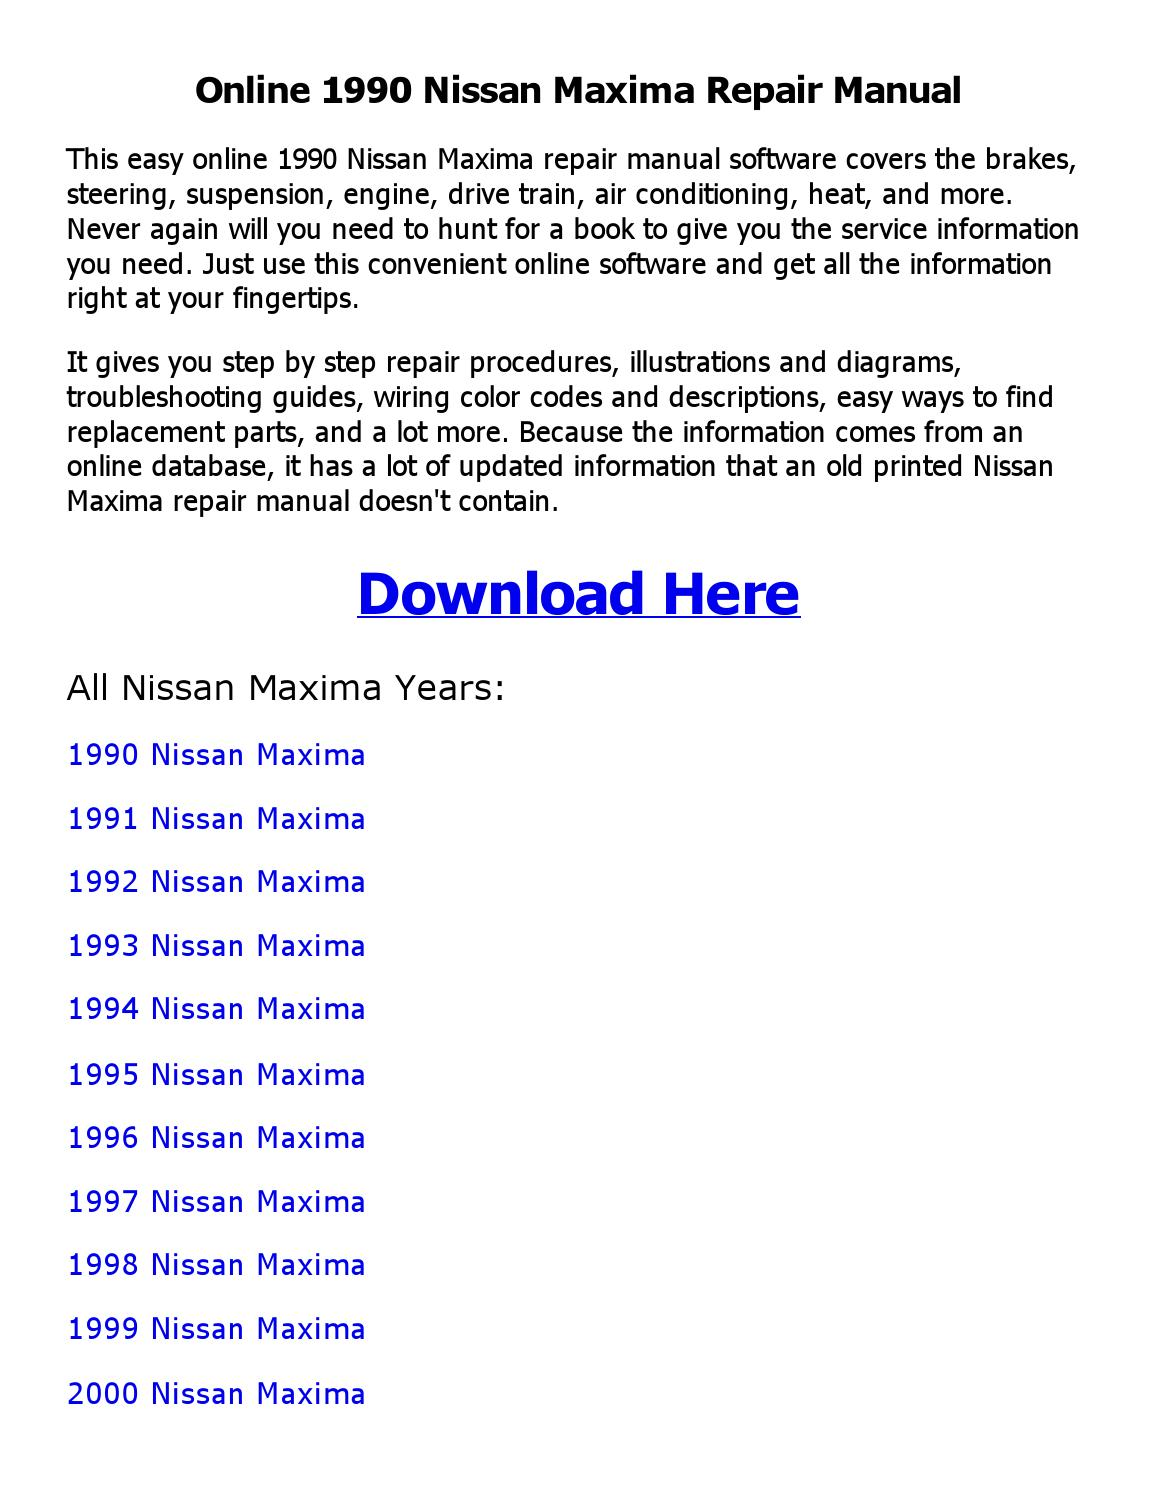 1990 Nissan Maxima Repair Manual Online By Sayma Issuu 1998 Engine Diagram